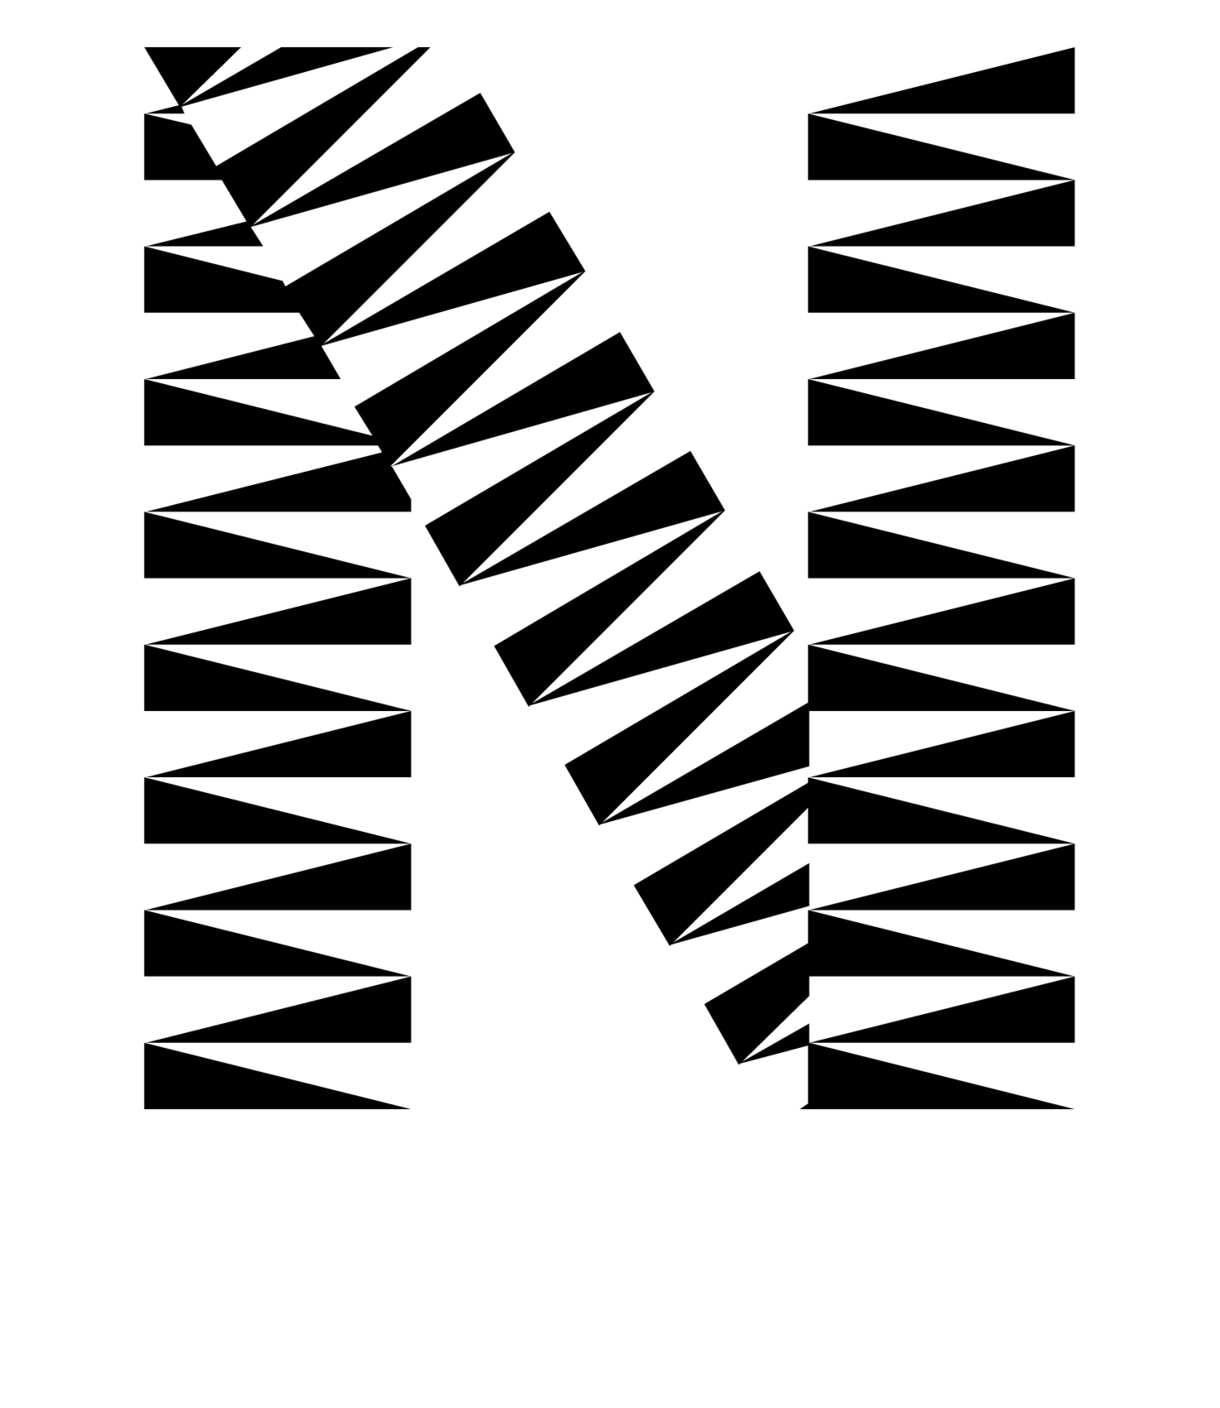 pattern-project-letters-13-1220x1407px